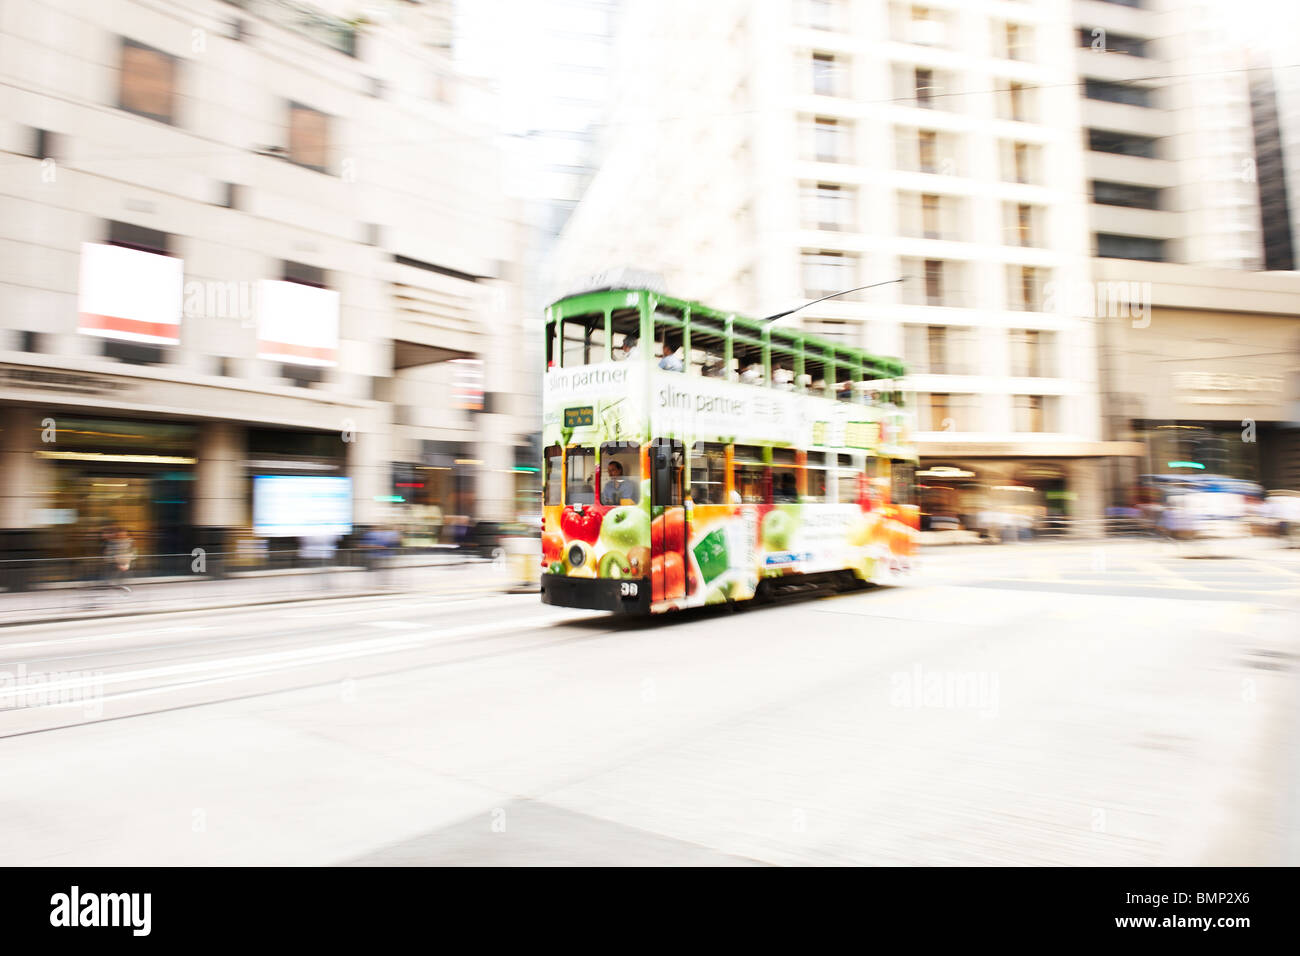 A double decker bus covered in colorful advert move across downtown Hong Kong, captured with motion blur. - Stock Image